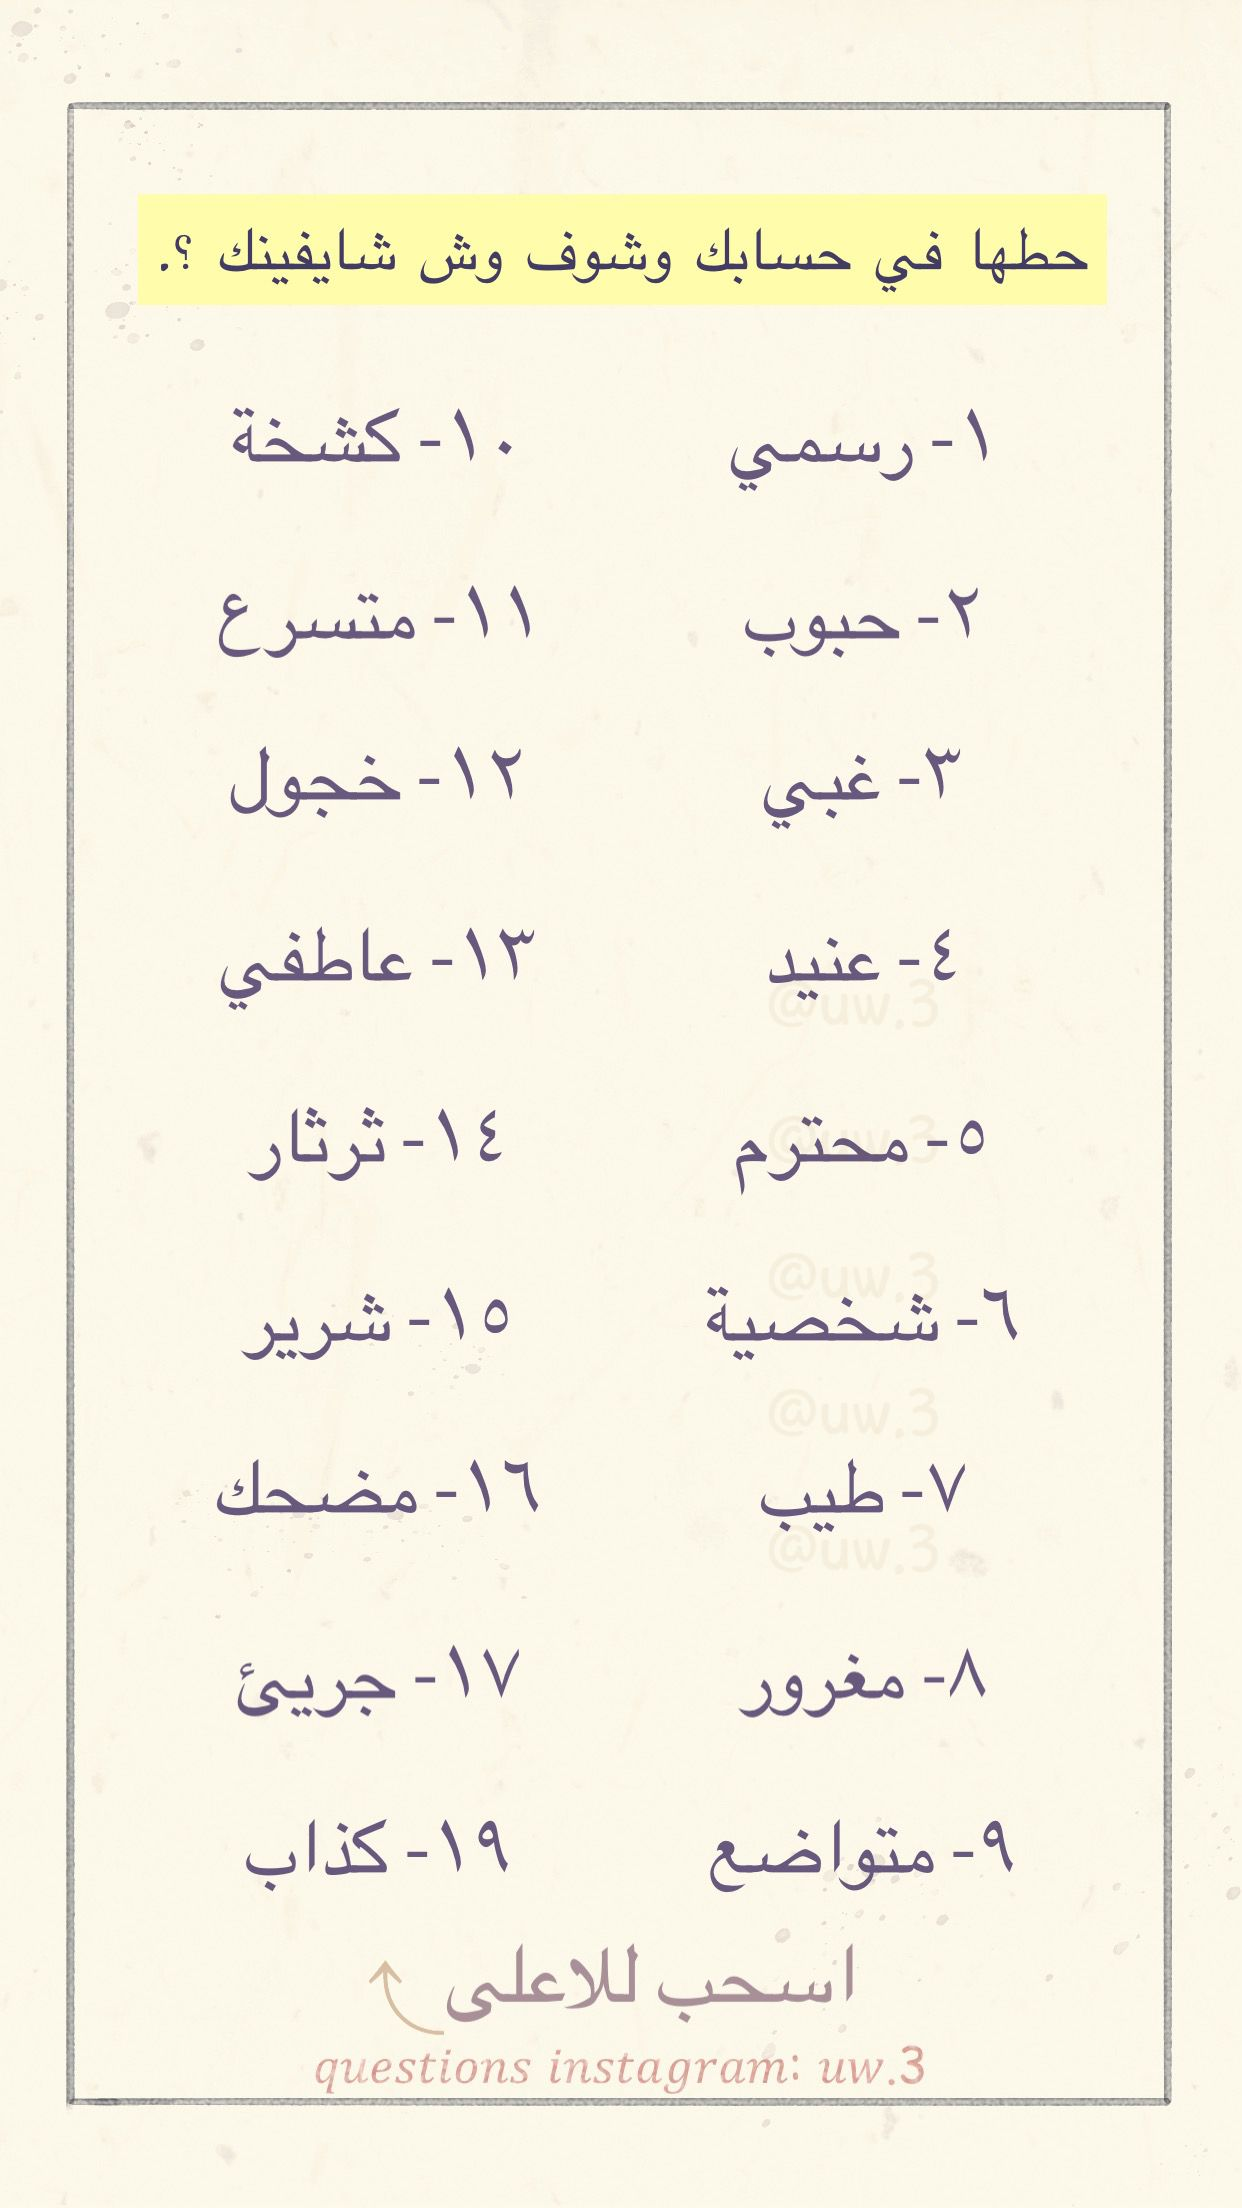 Pin By Lulu Lee On Arabic Beautiful Arabic Words Girly Photography Jokes Quotes